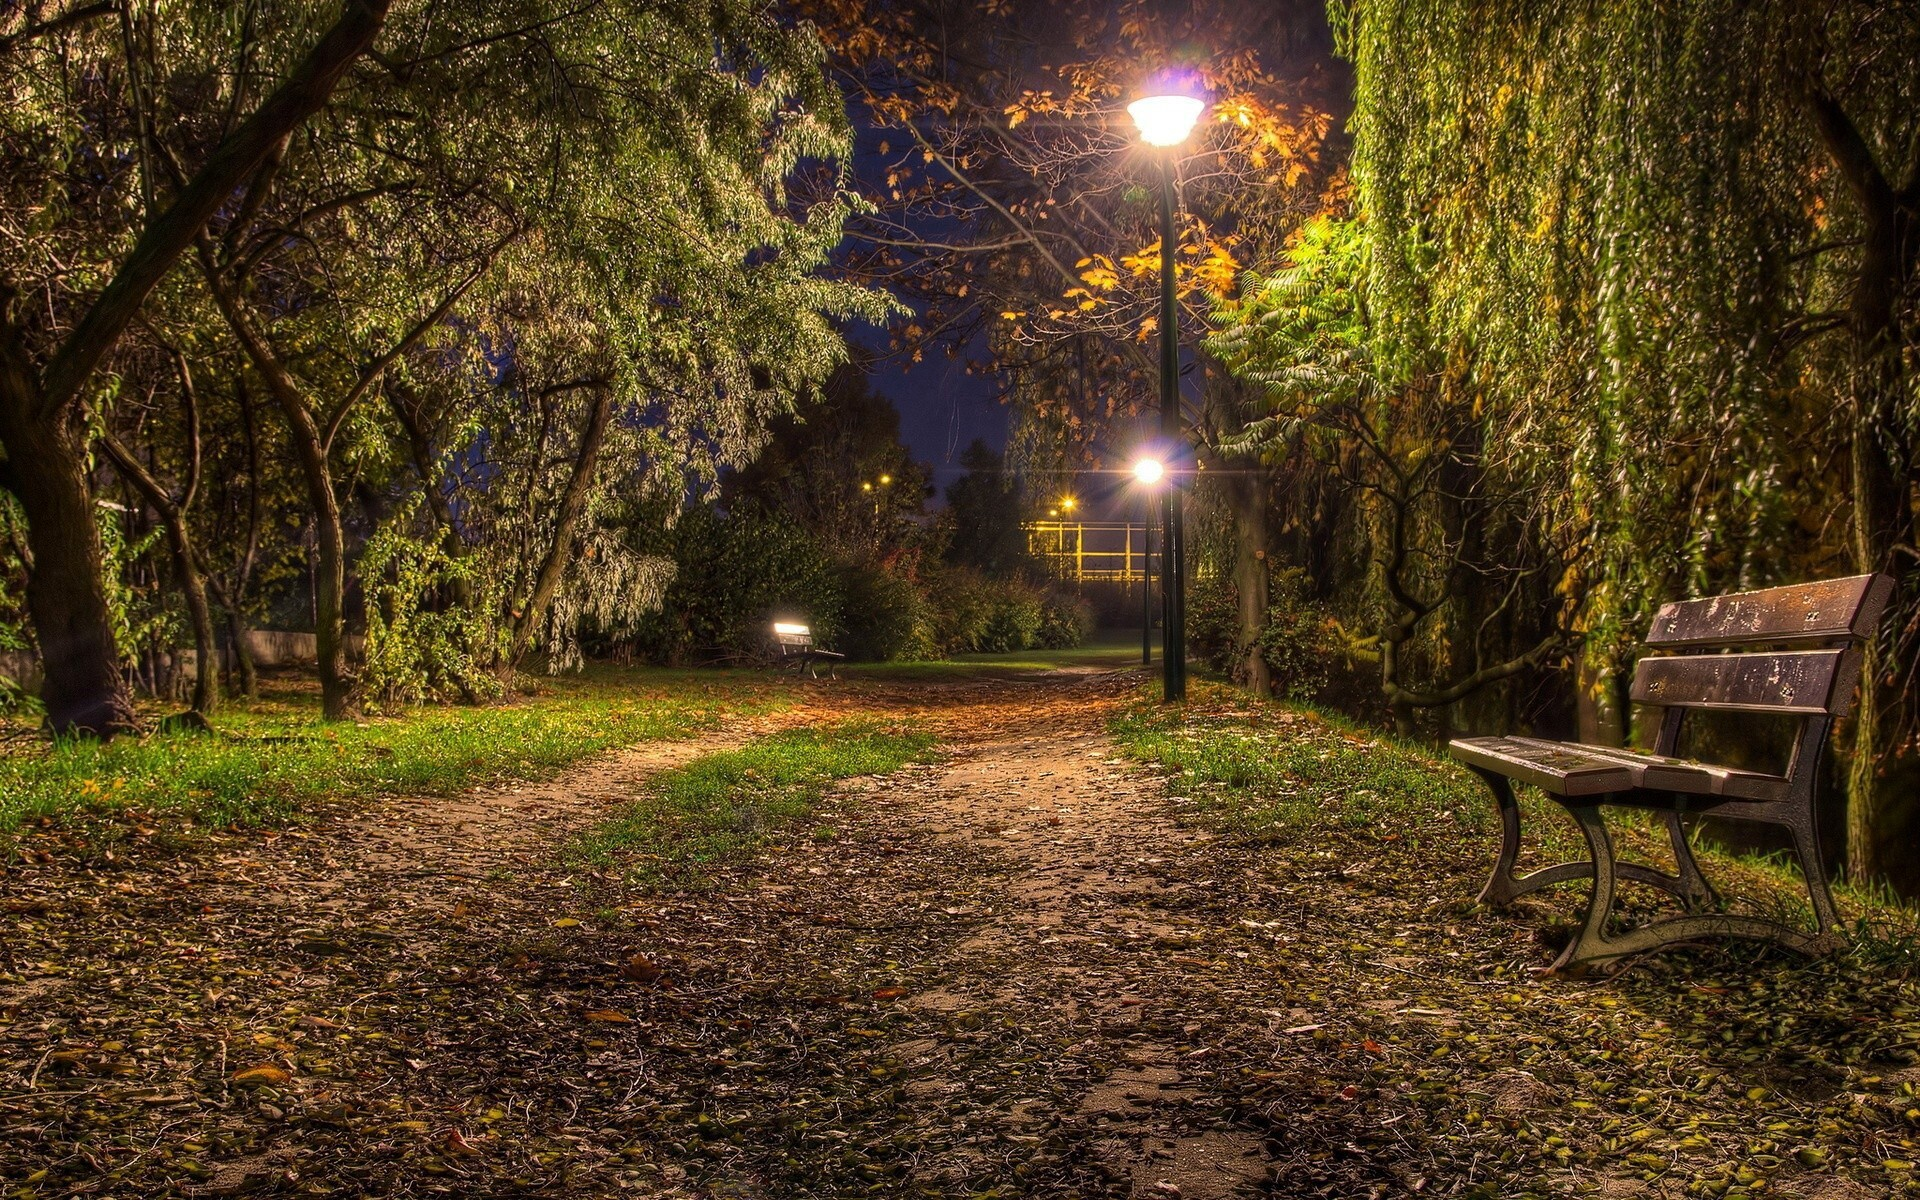 Nature Night Look And Bench Fantacy Wallpapers Hd Wallpapers